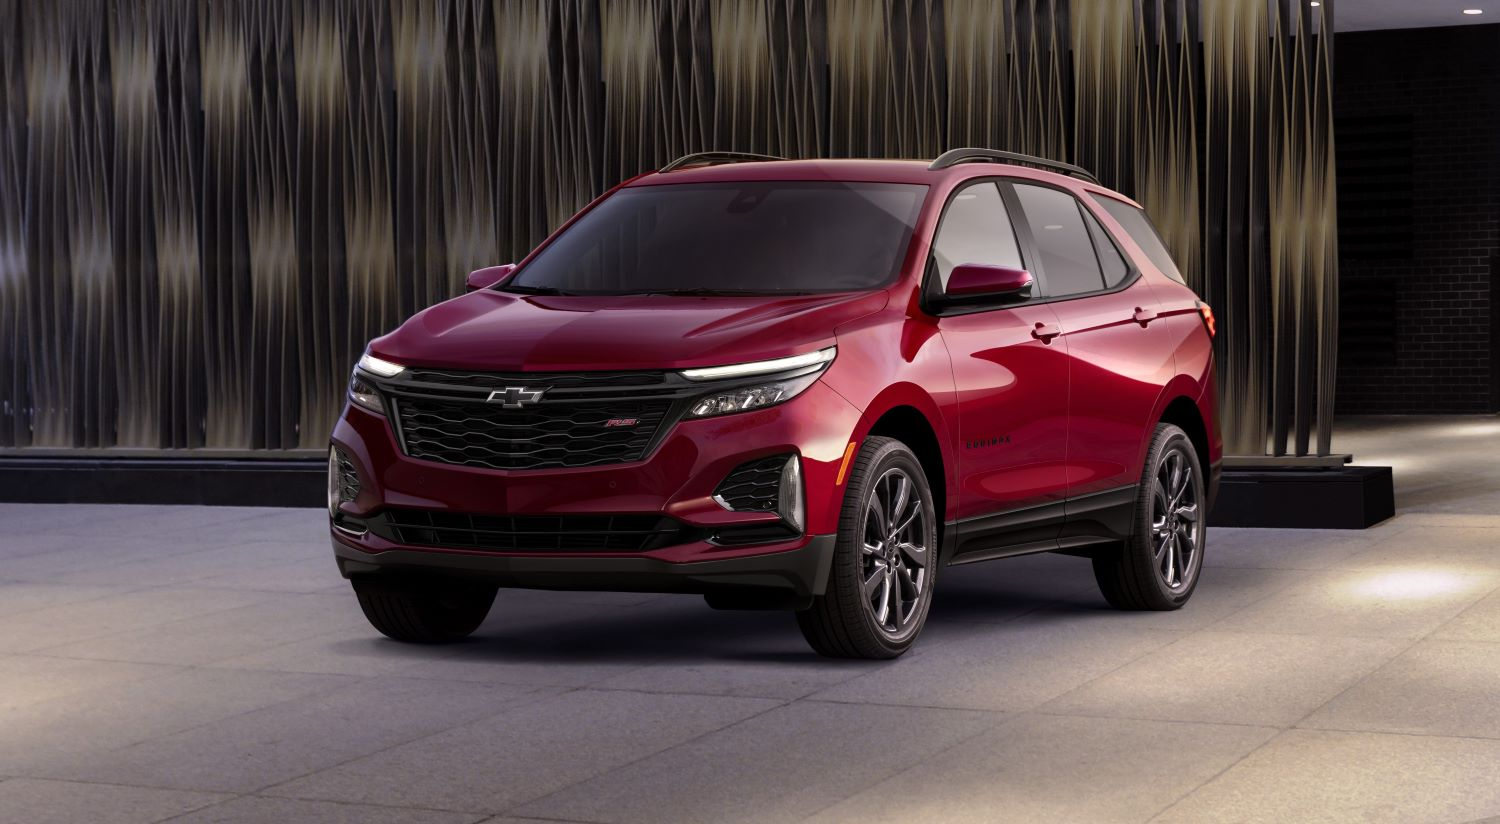 2021 Chevrolet Equinox: Hot Or Not? | Gm Authority 2021 Chevy Equinox Transmission Problems, Turbo, Tires